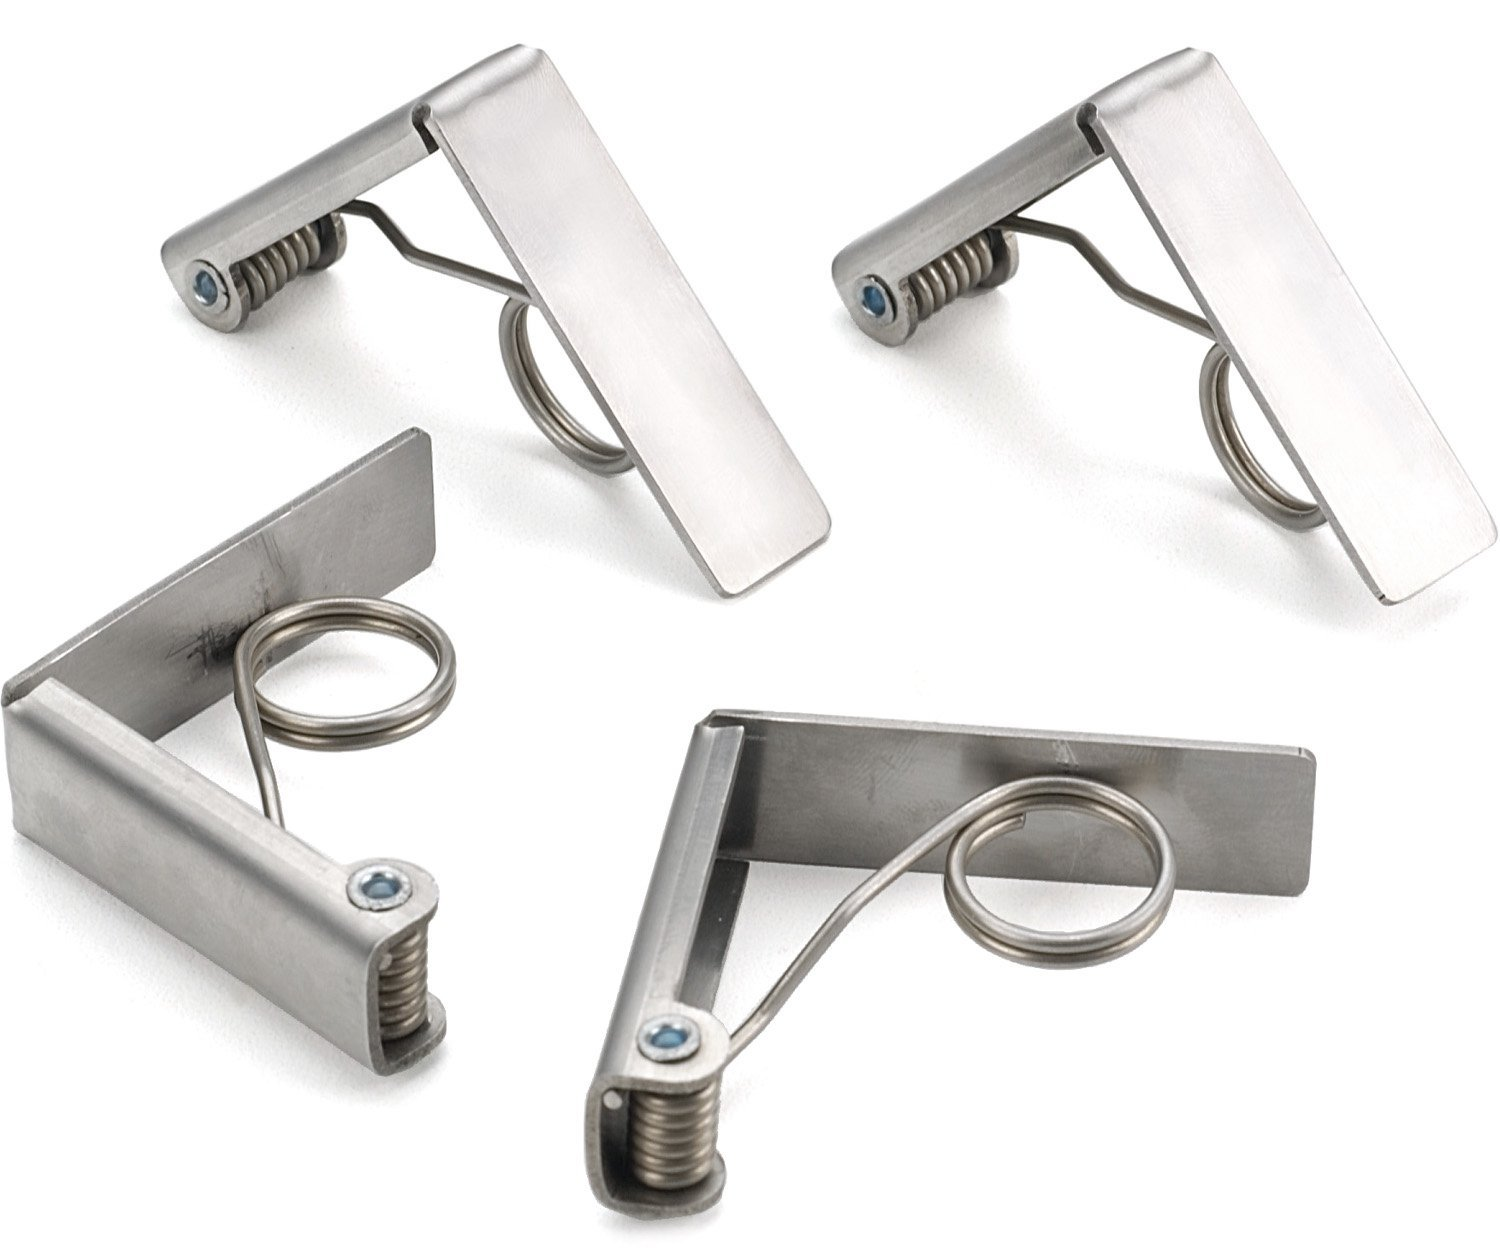 Amazon clipartall.com: RSVP Endurance Stainless Steel Table Cloth Clip, Set of 4: Home u0026amp; Kitchen